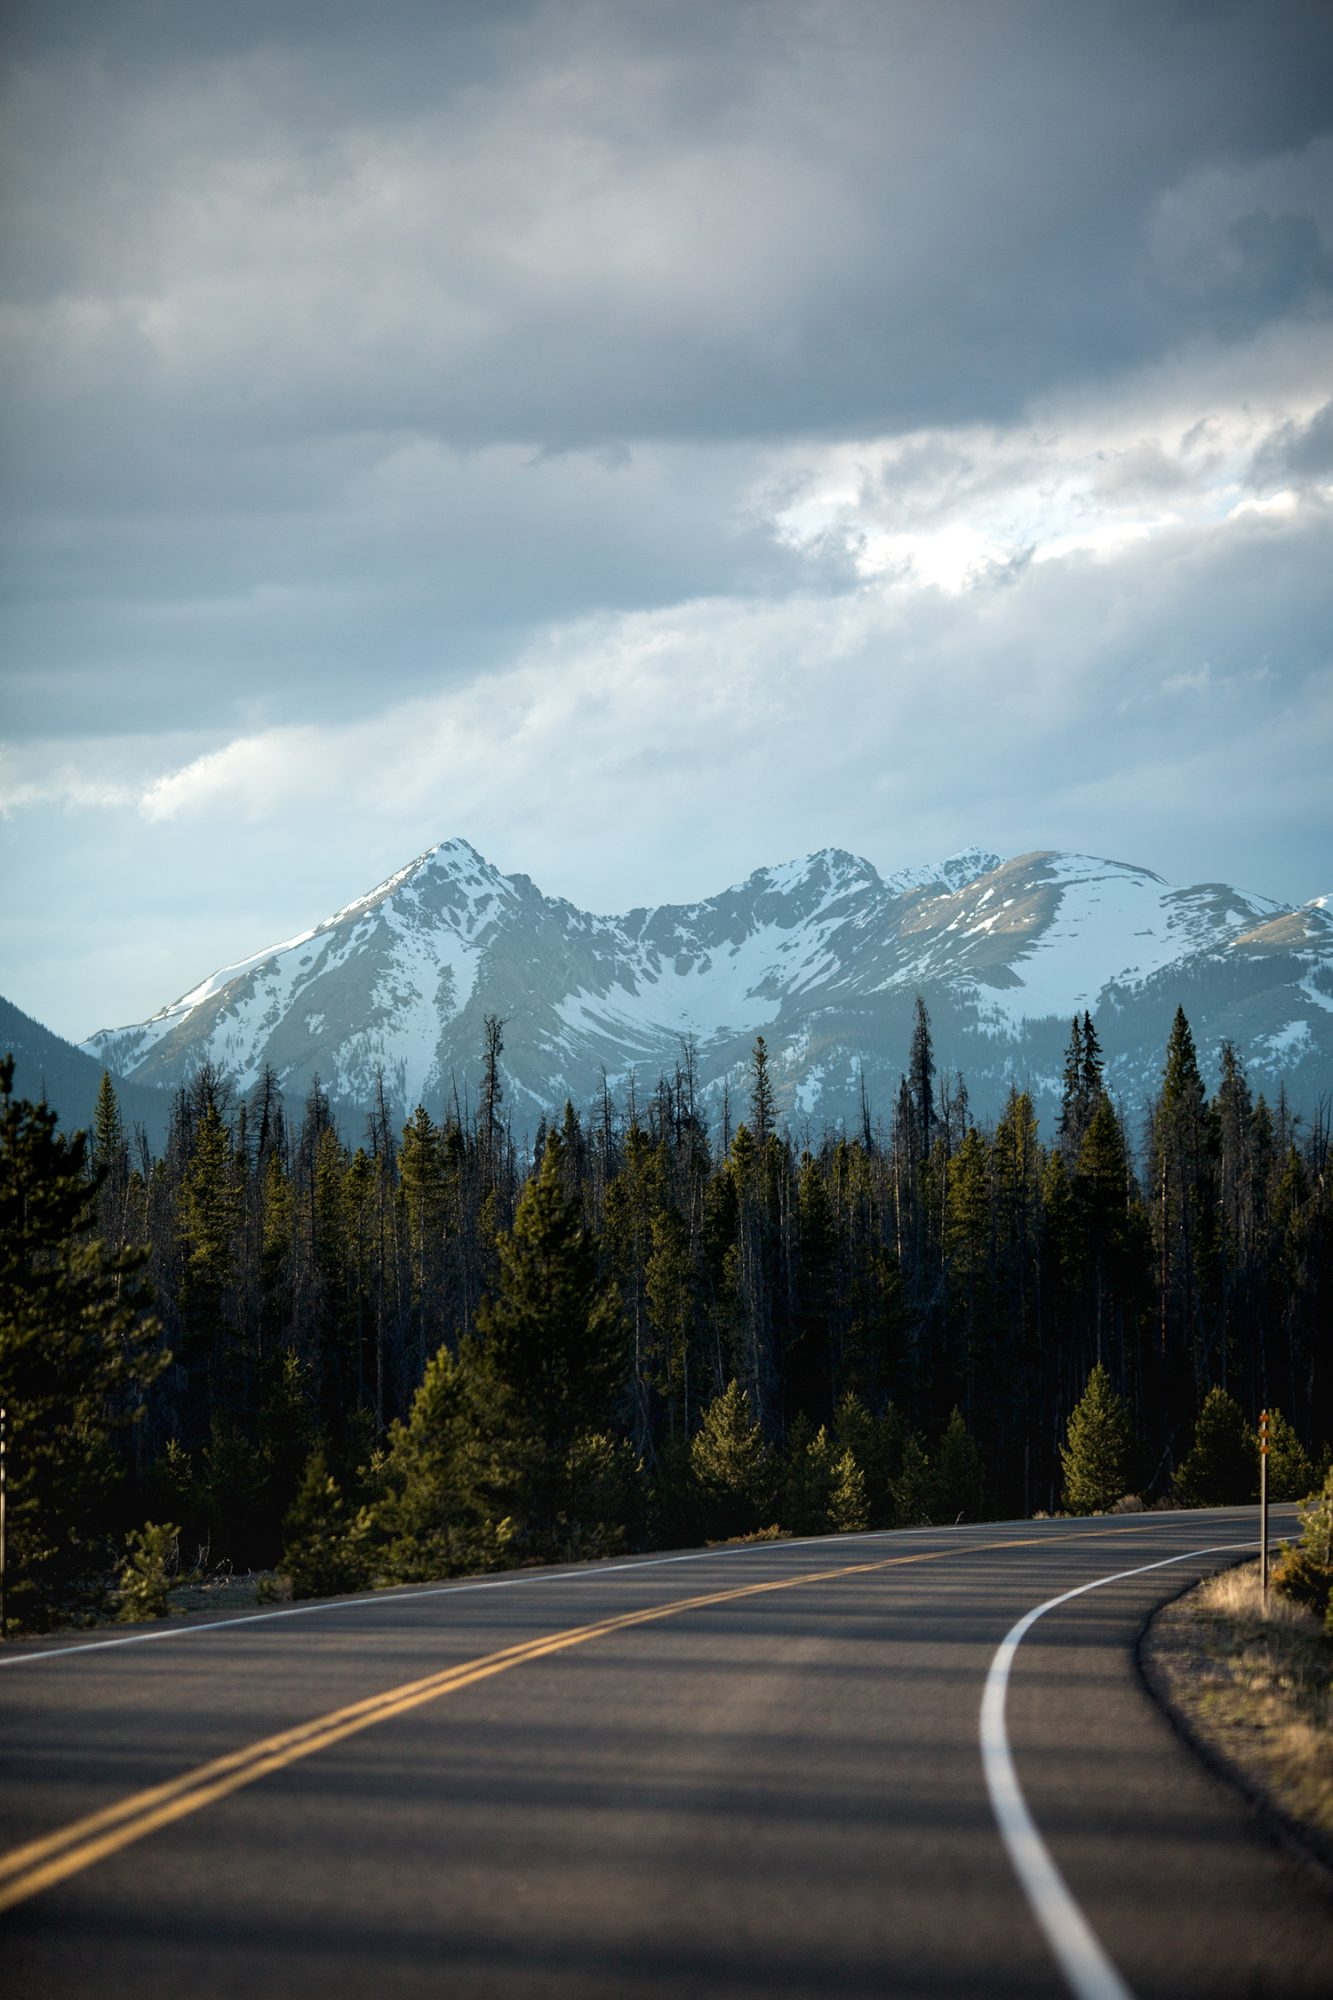 The Open Roads and Moutains